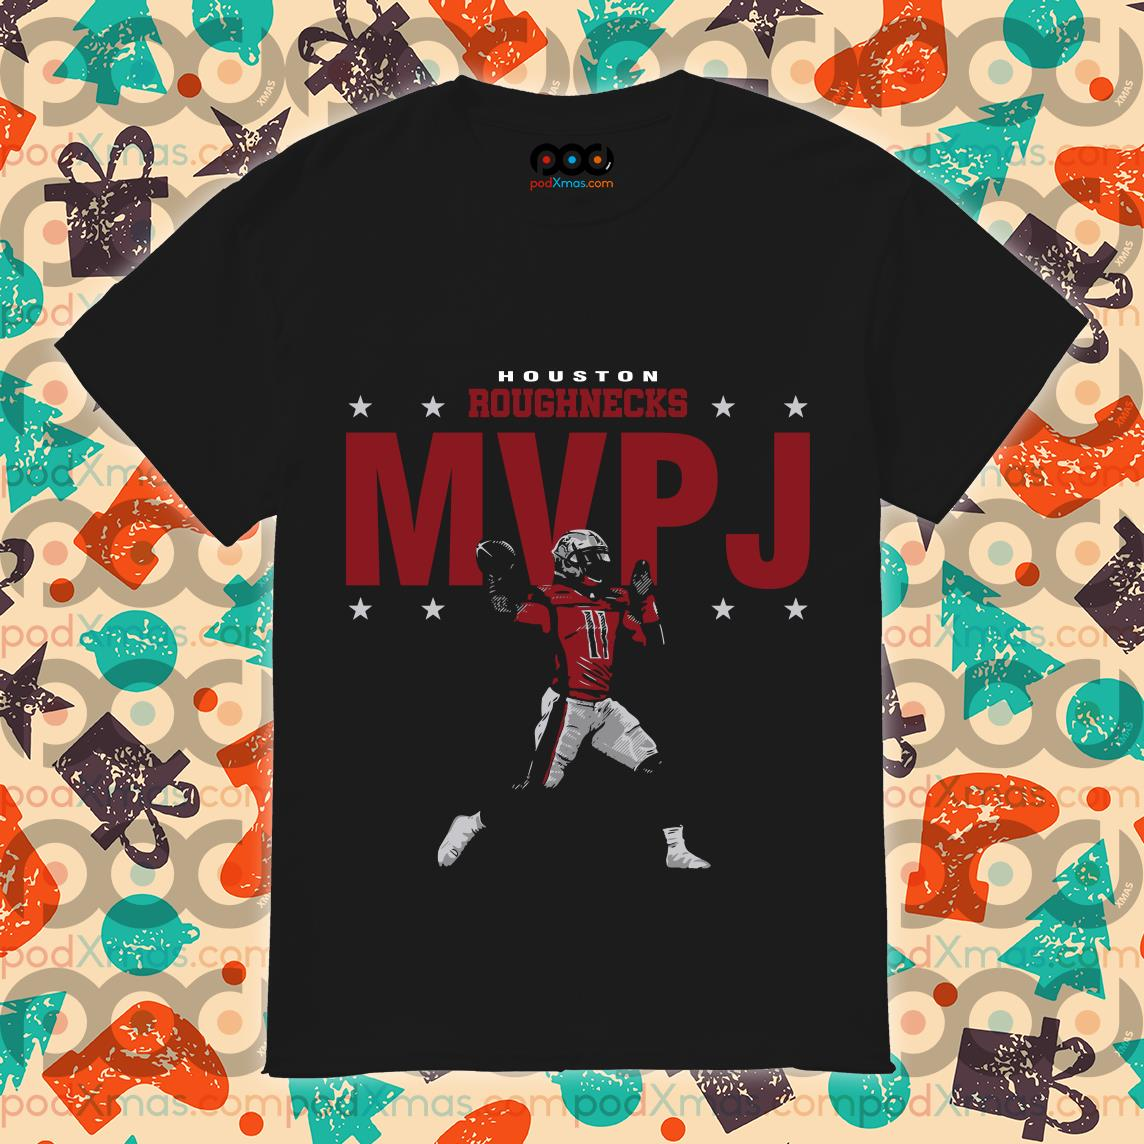 Houston Roughnecks MVP J shirt